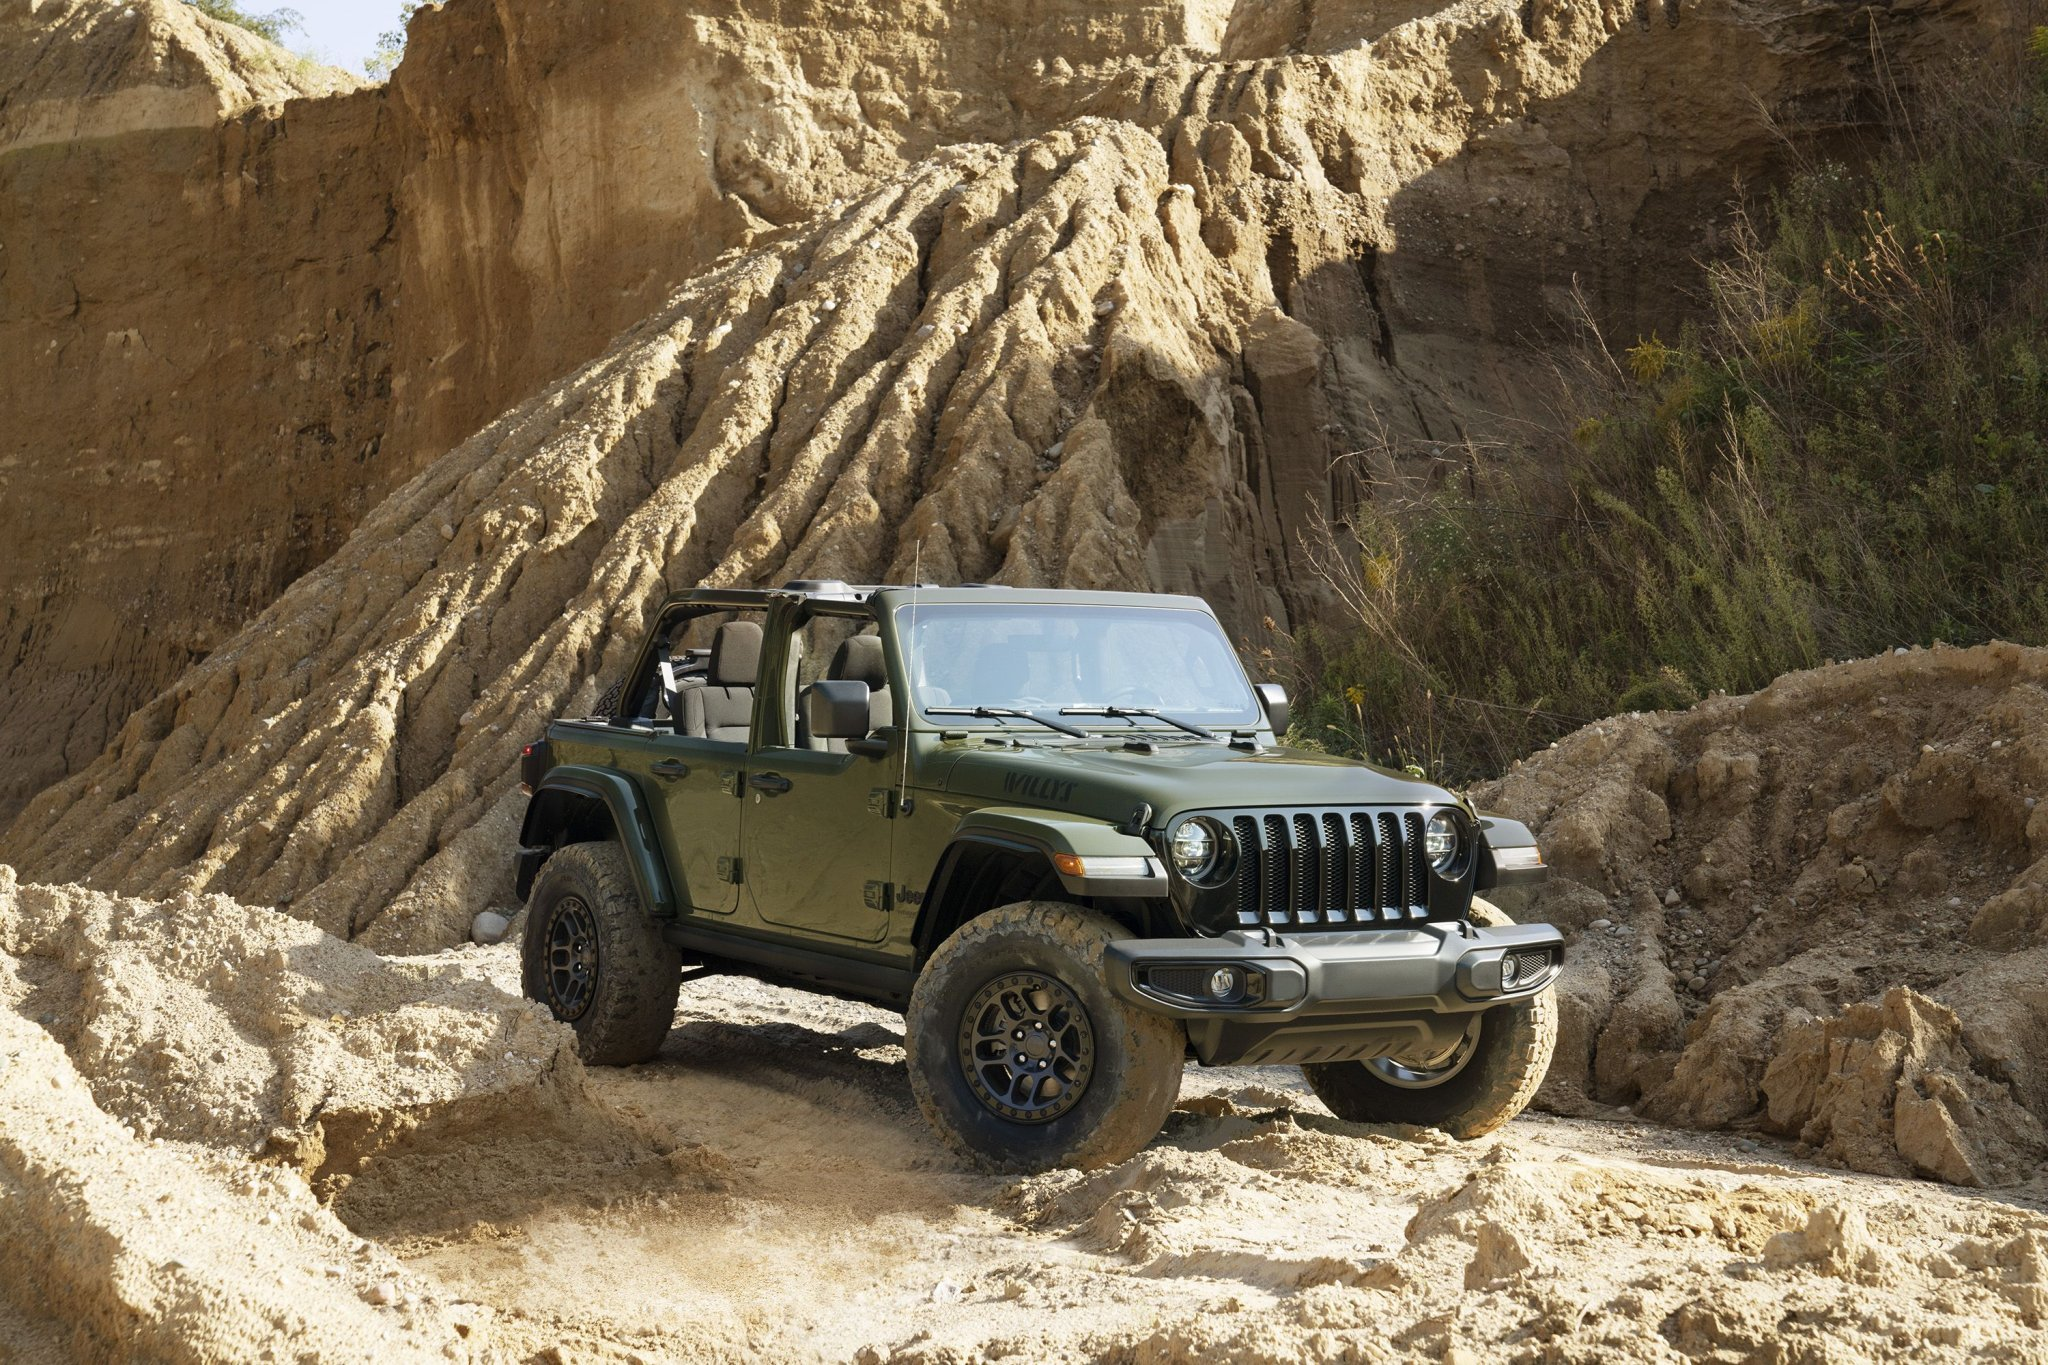 Jeep Has a New Off-Road Wrangler That's Both Badass and Affordable